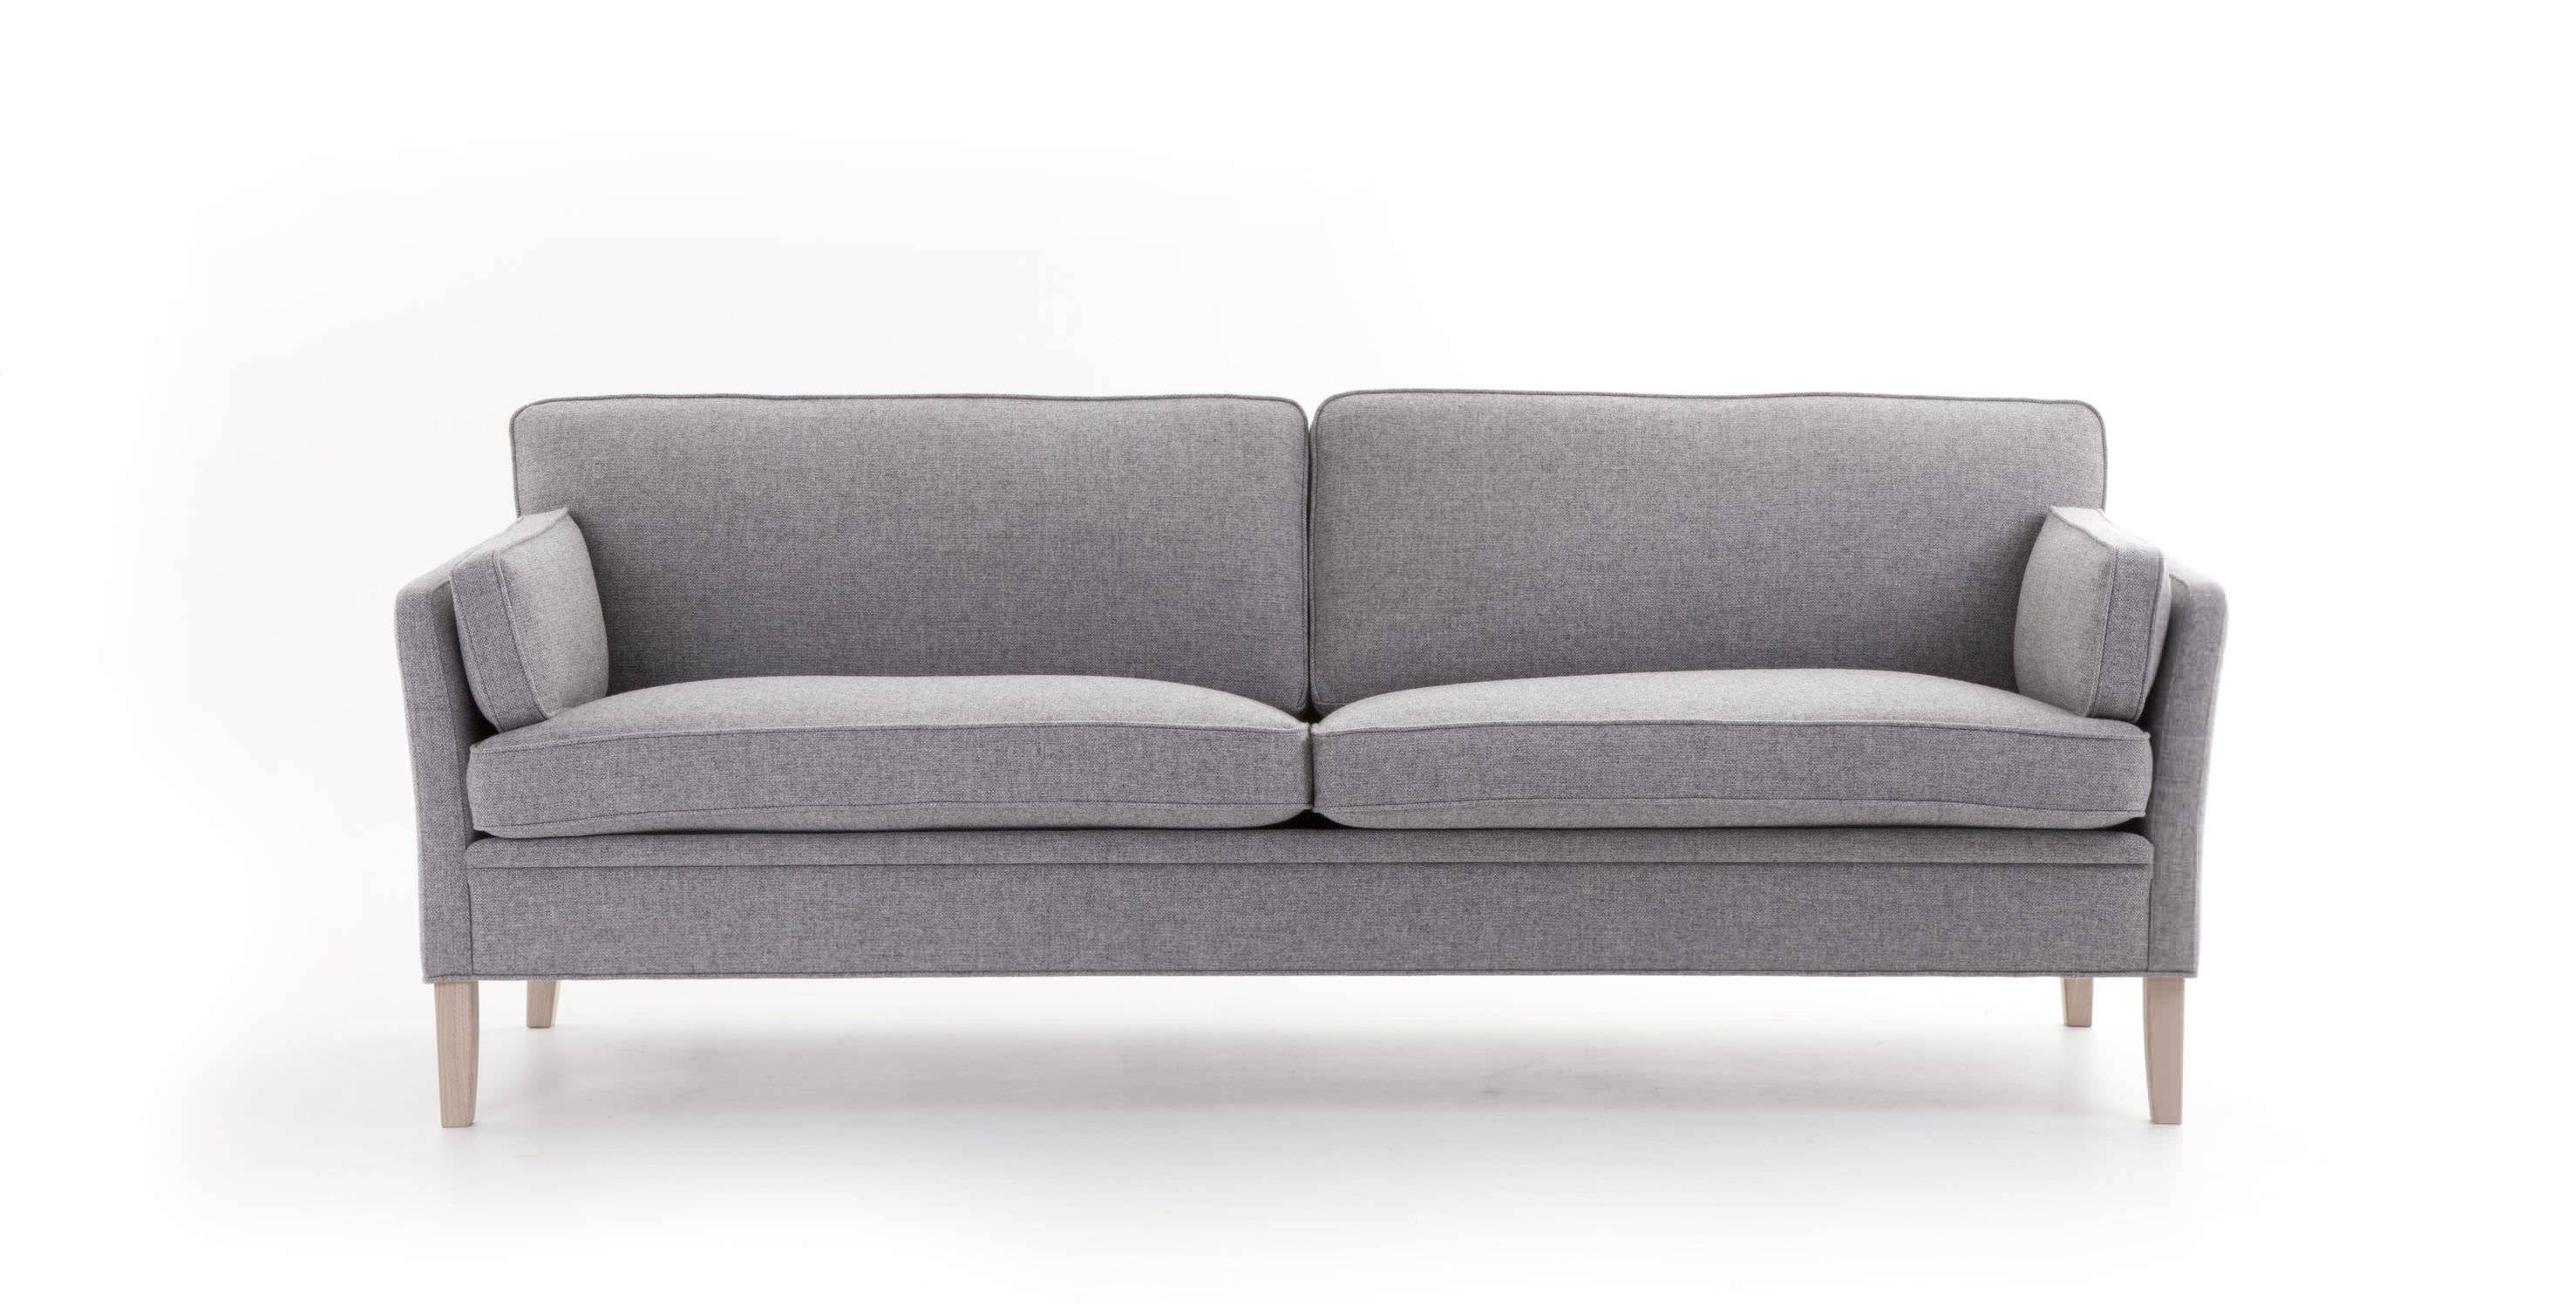 Traditional Sofa / Fabric / 2-Seater / With Removable Cover intended for Sofas With Removable Covers (Image 29 of 30)